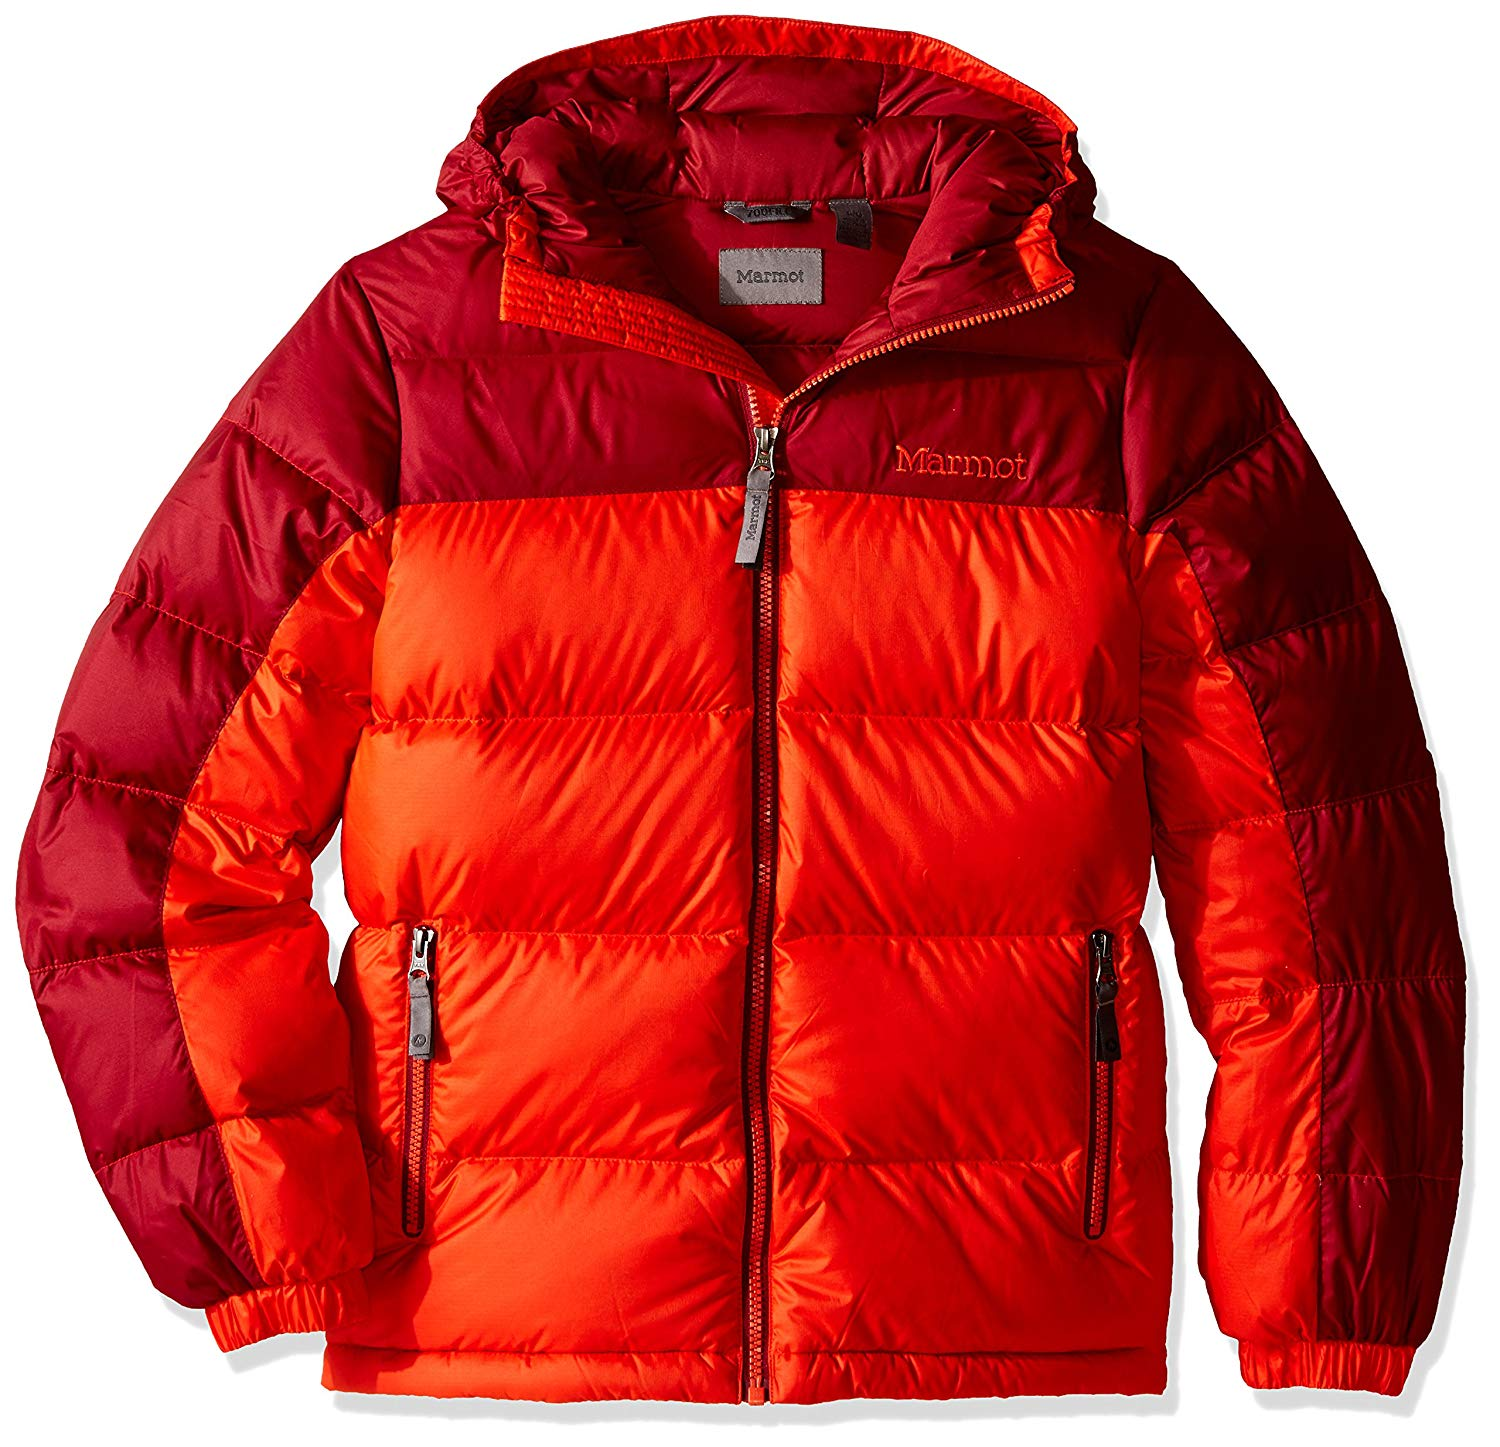 2b977d888 Buy Marmot Boys Guides Down Hoody in Cheap Price on Alibaba.com